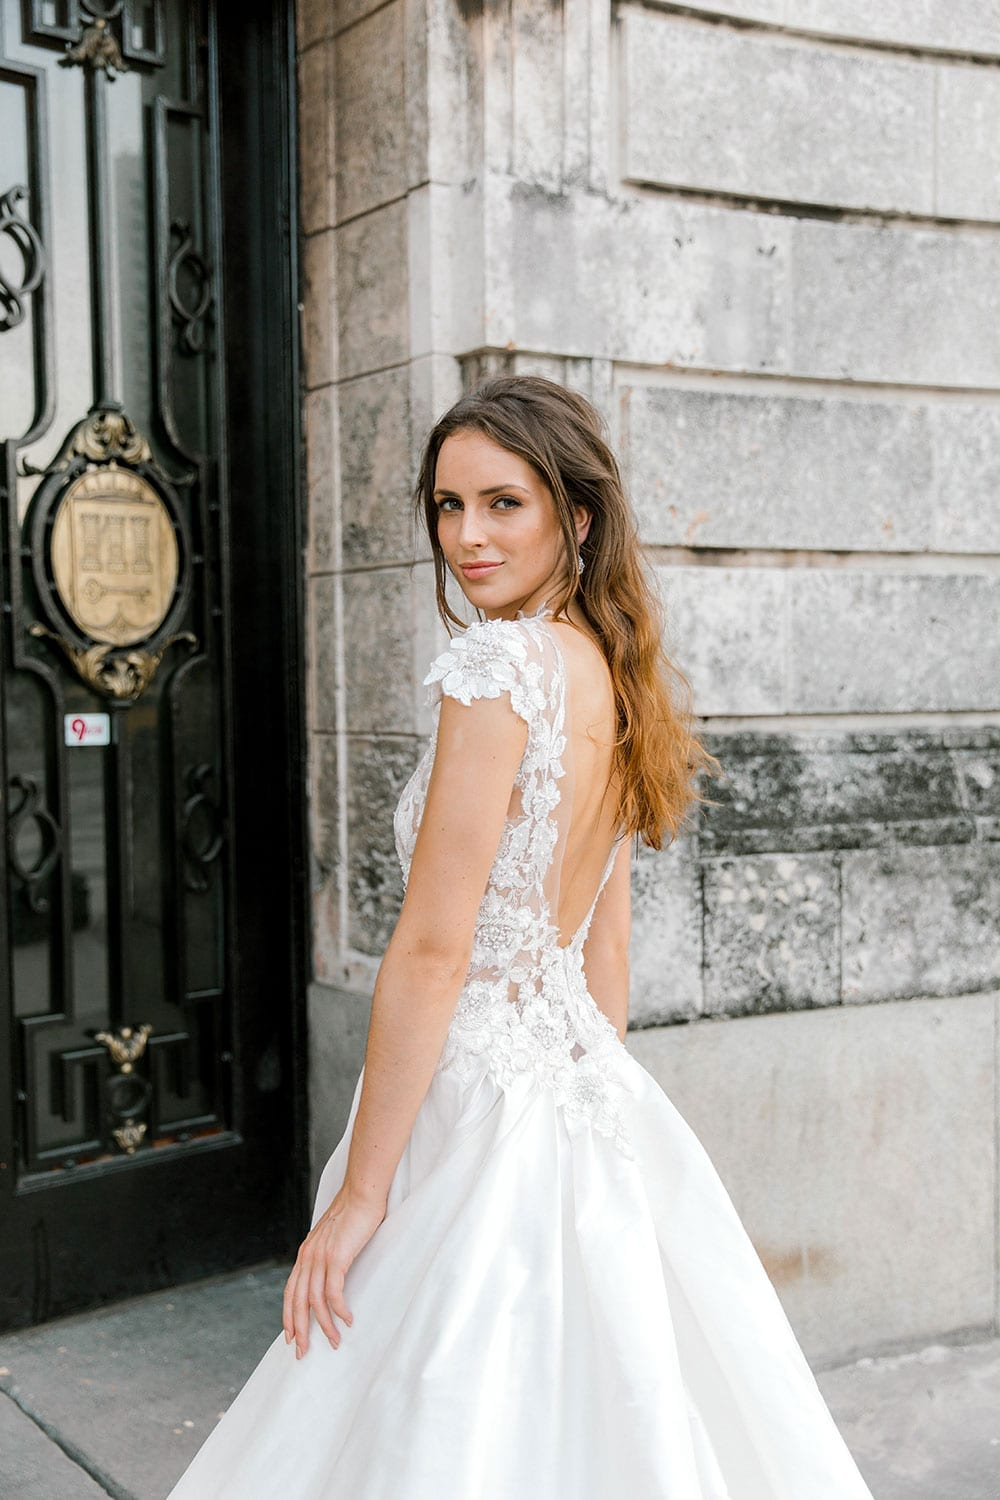 Model wearing Vinka Design Annalie Wedding Dress, a Beaded Lace High Neck Silk Wedding Gown on steps in Havana close up of back detail